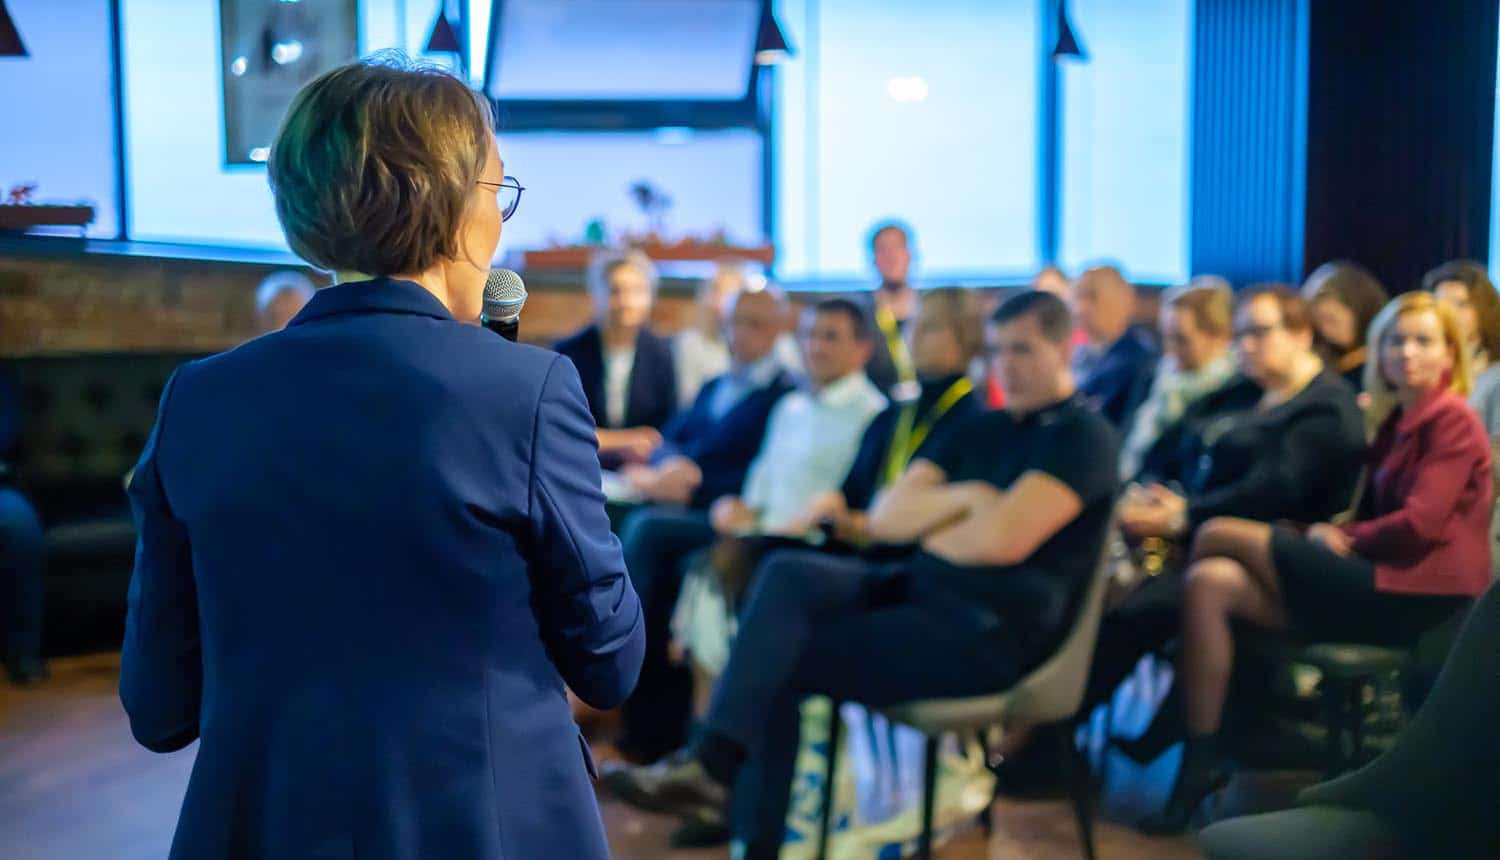 Female presenter speaks to audiences at privacy training